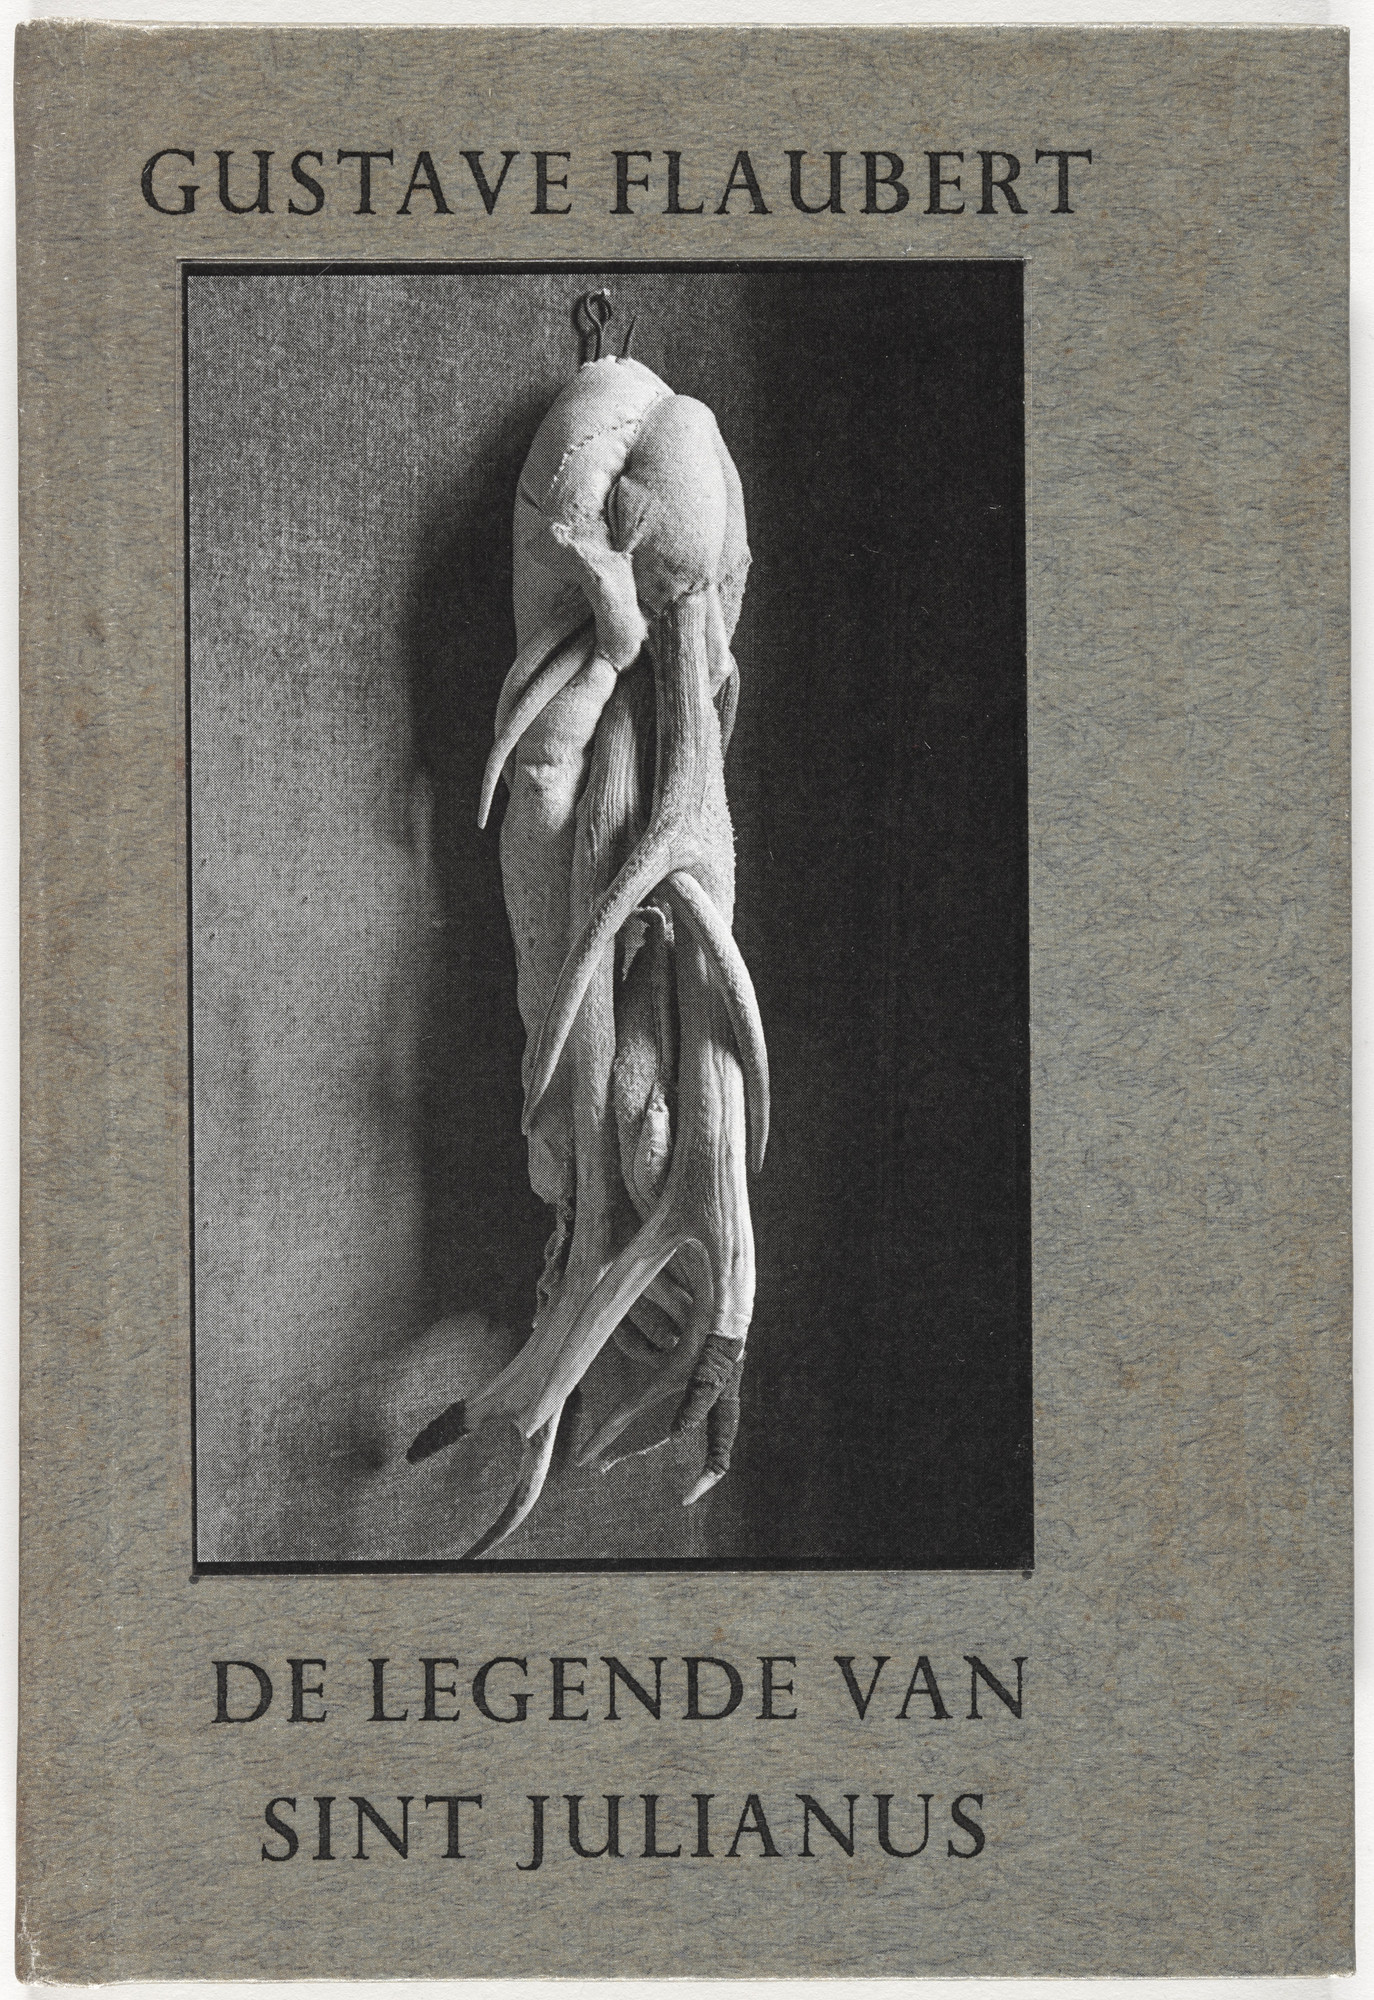 Berlinde De Bruyckere. De Legende van Sint Julianus. 2015 (originally published 1939)